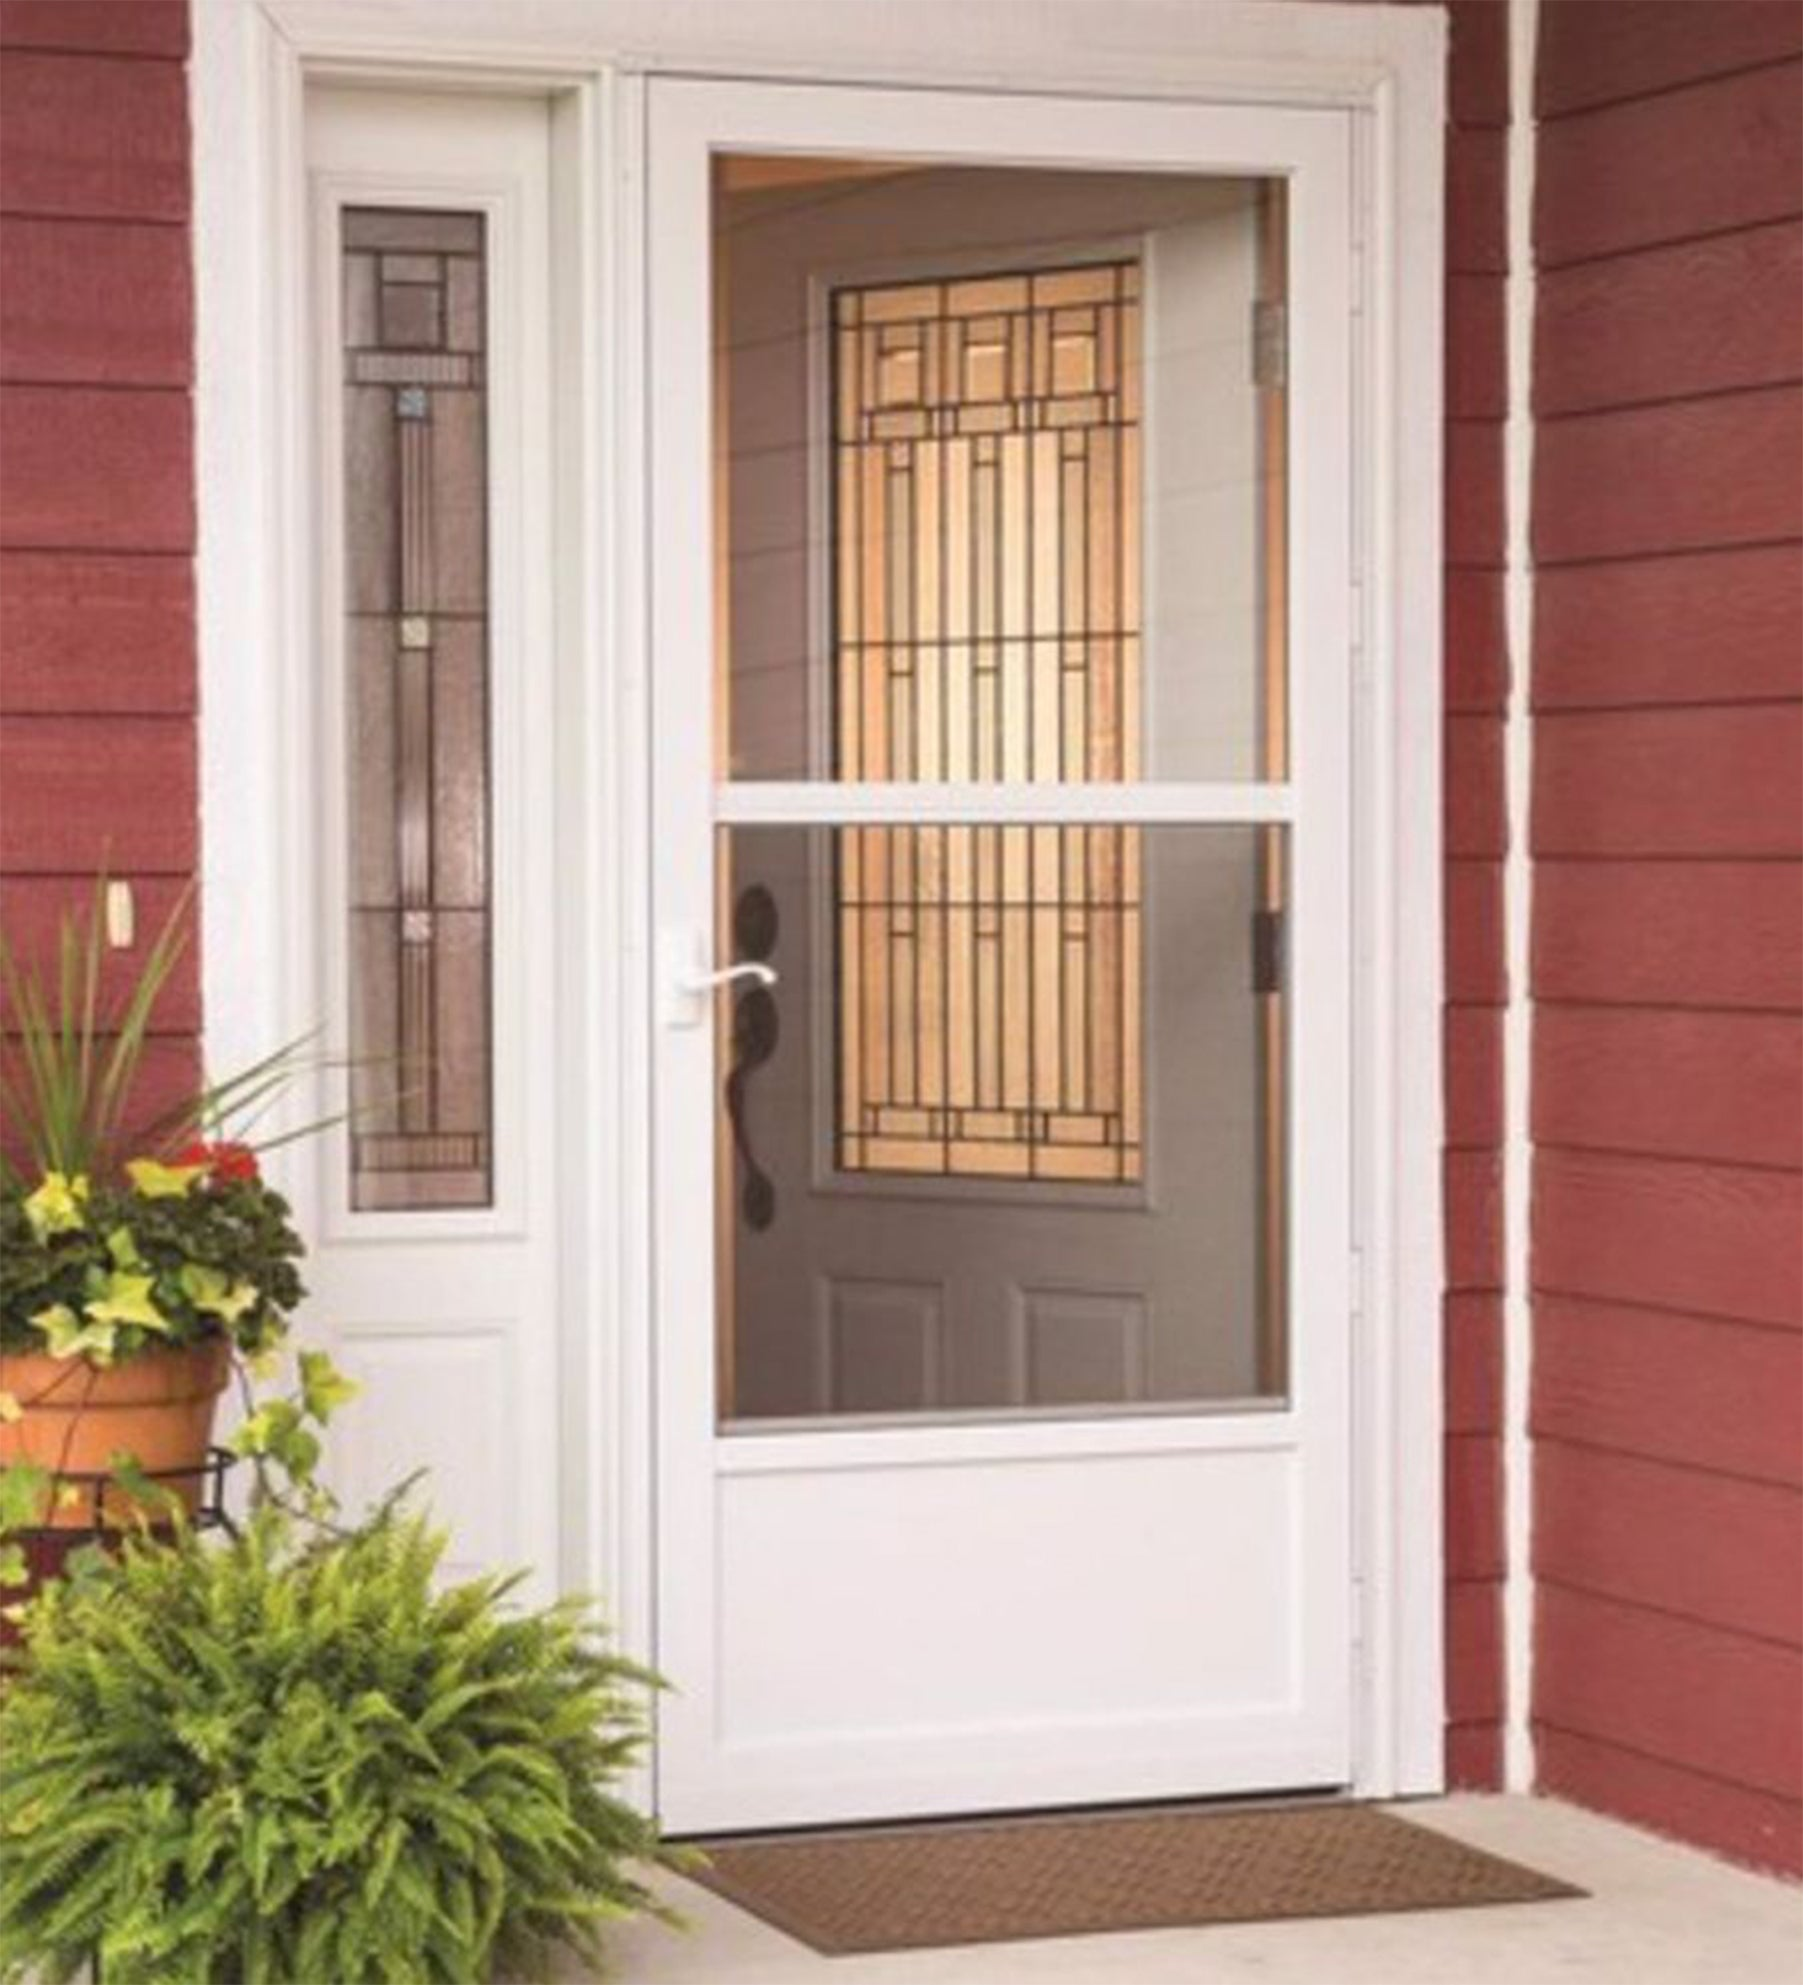 INSTALLED Larson Life Core Mid-view Reversa Screen Storm Door w/ Hardware STARTING $380